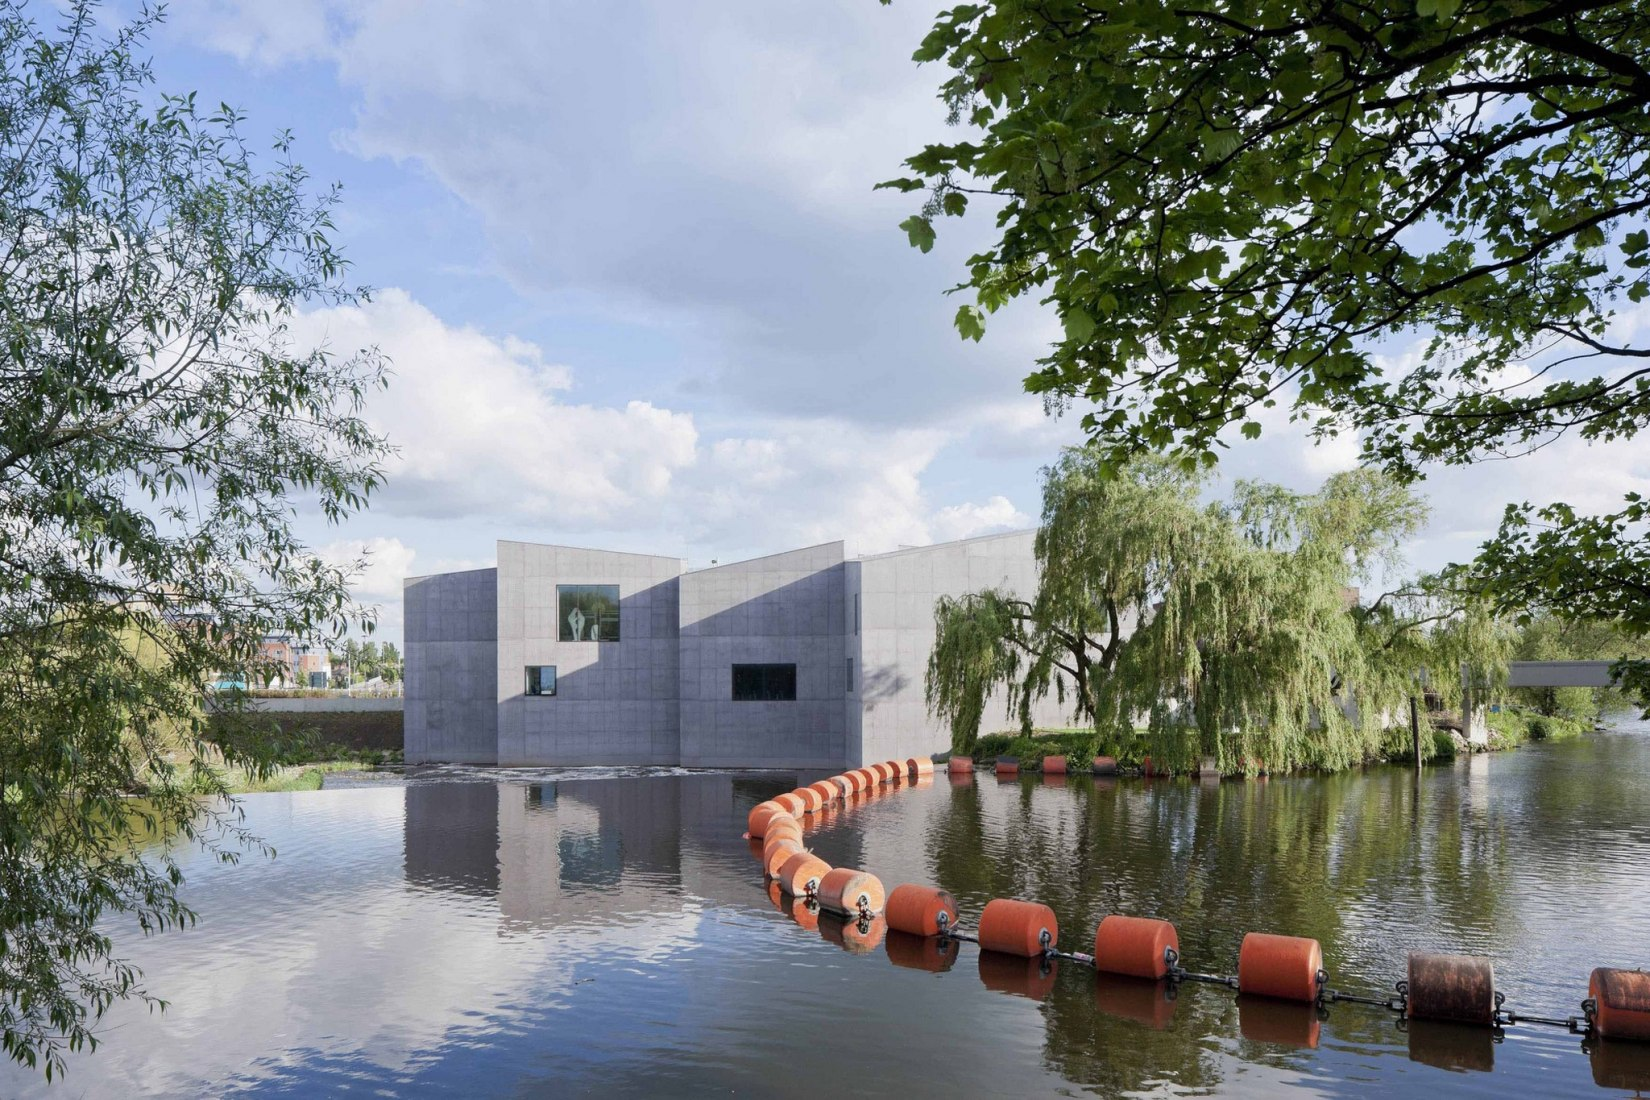 Exterior desde el agua. The Hepworth Wakefield Gallery por David Chipperfield Architects. Fotografía © Iwan Baan